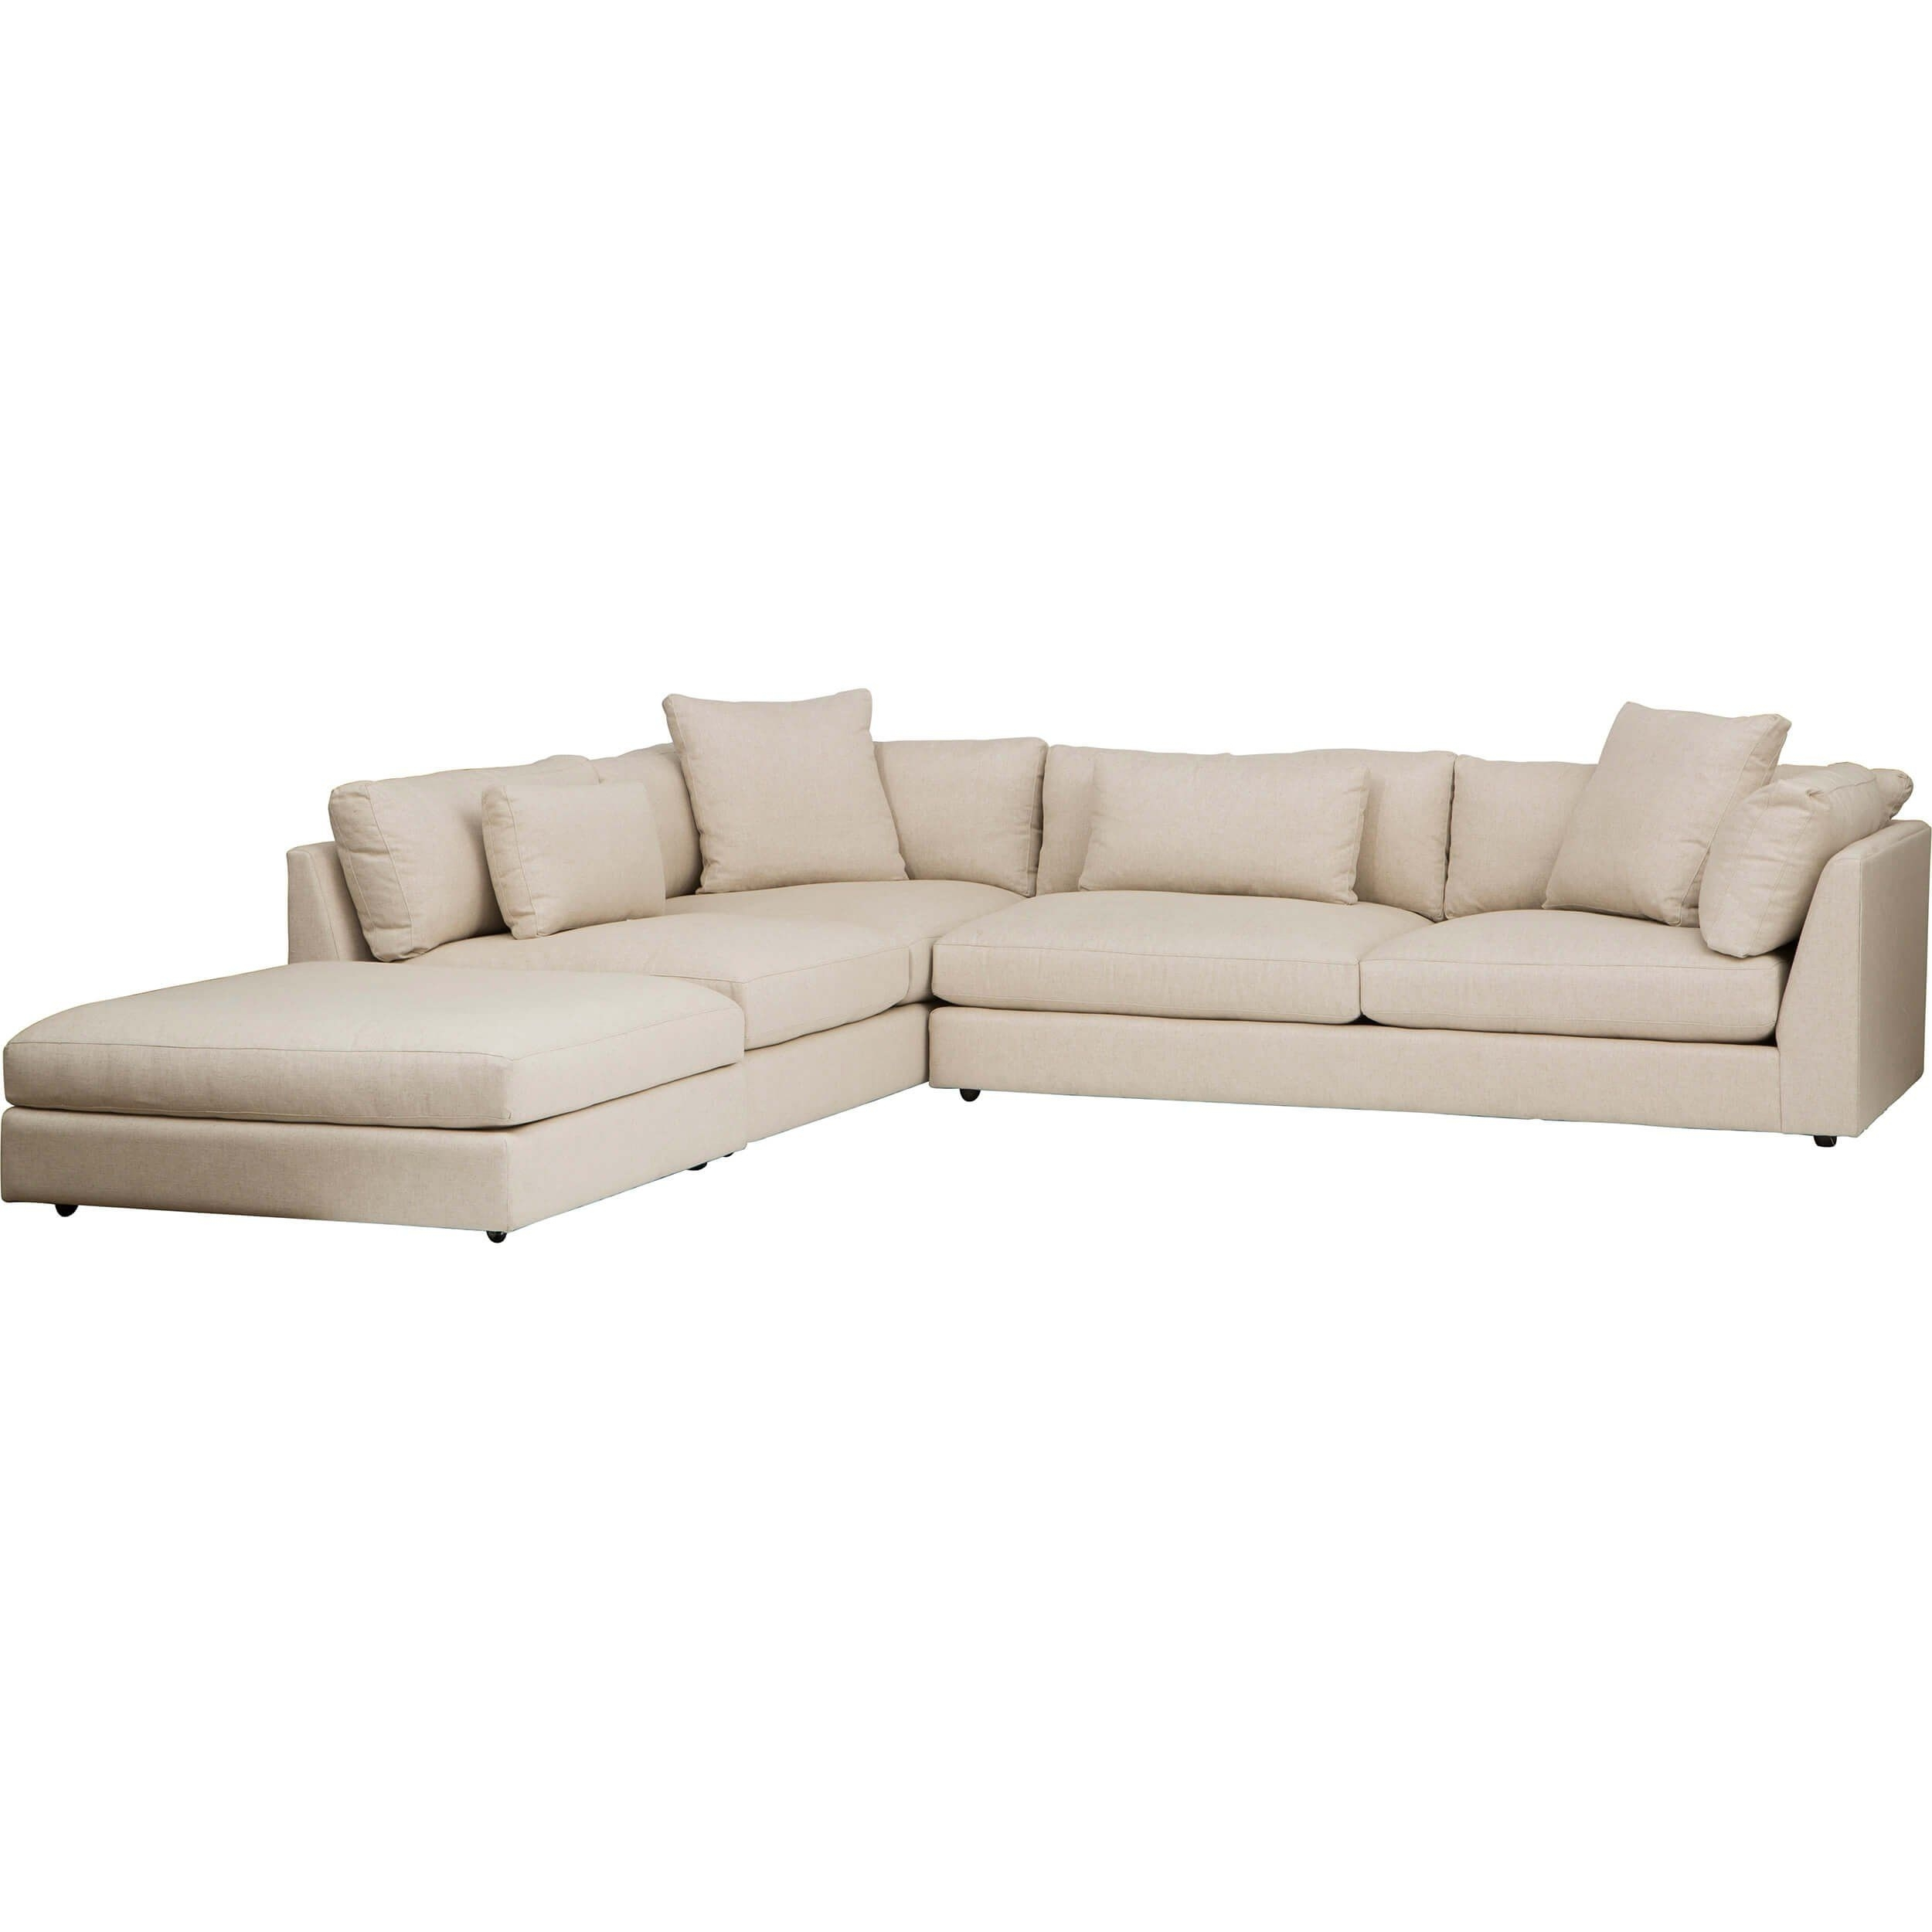 Kellen Sectional, Crevere Cream | Pinterest | Modern, Living Rooms Within Delano Smoke 3 Piece Sectionals (Image 13 of 25)